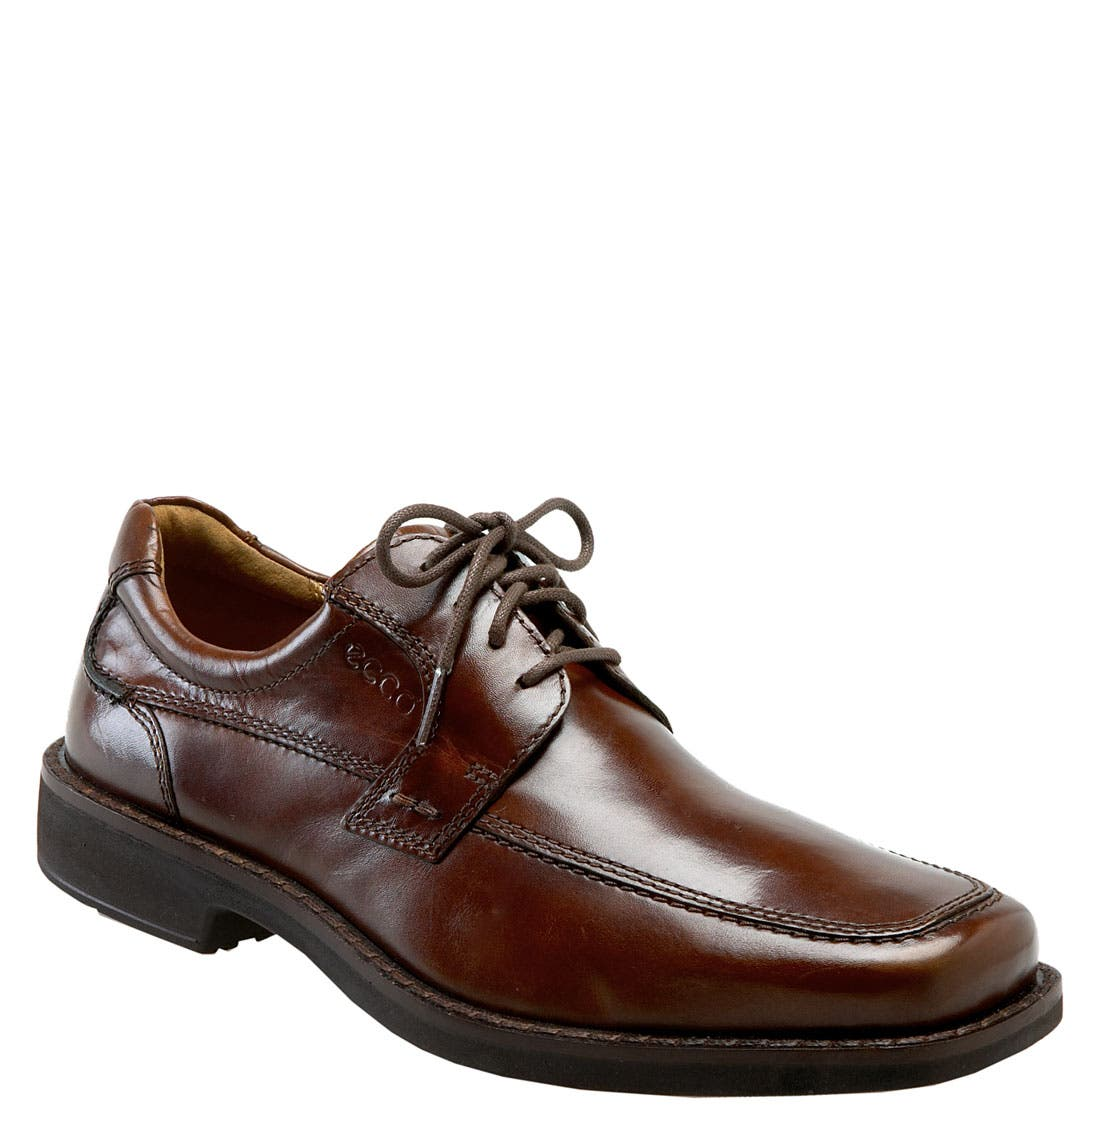 Alternate Image 1 Selected - ECCO 'Seattle' Apron Toe Oxford (Men)